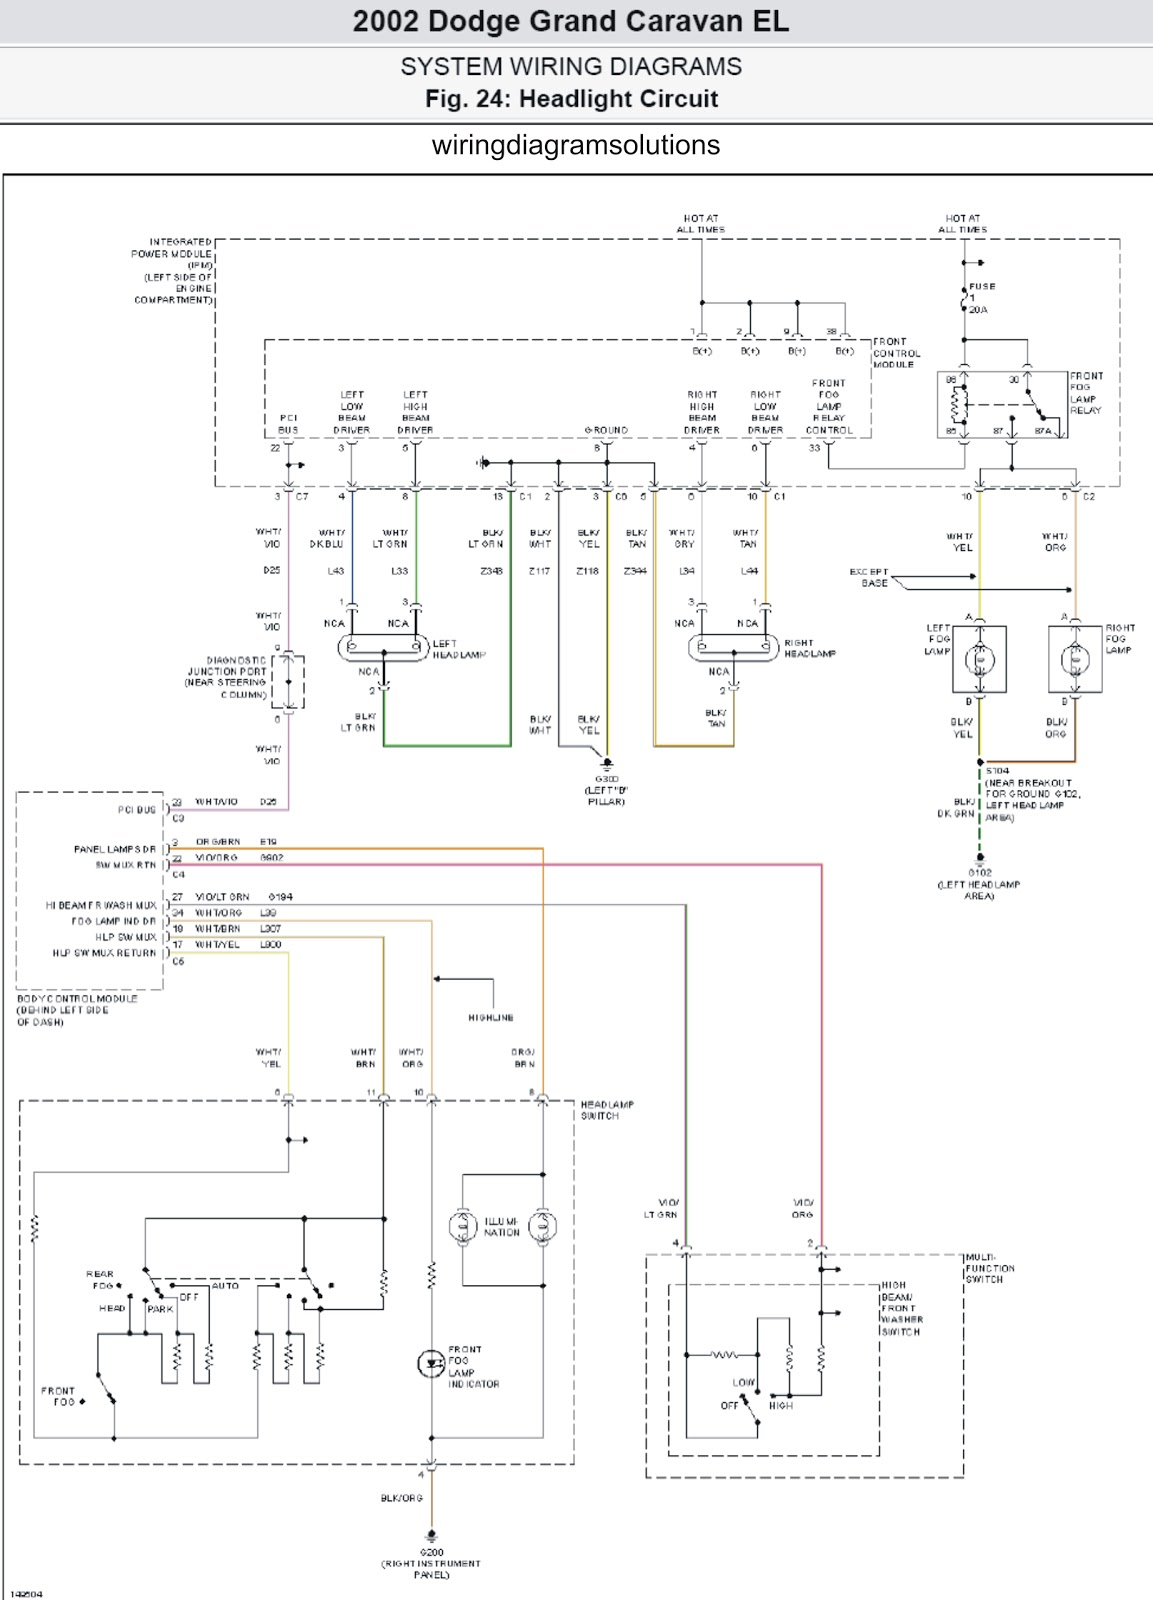 May 2011 Schematic Wiring Diagrams Solutions Auto Electrical Camaro Headlight Diagram